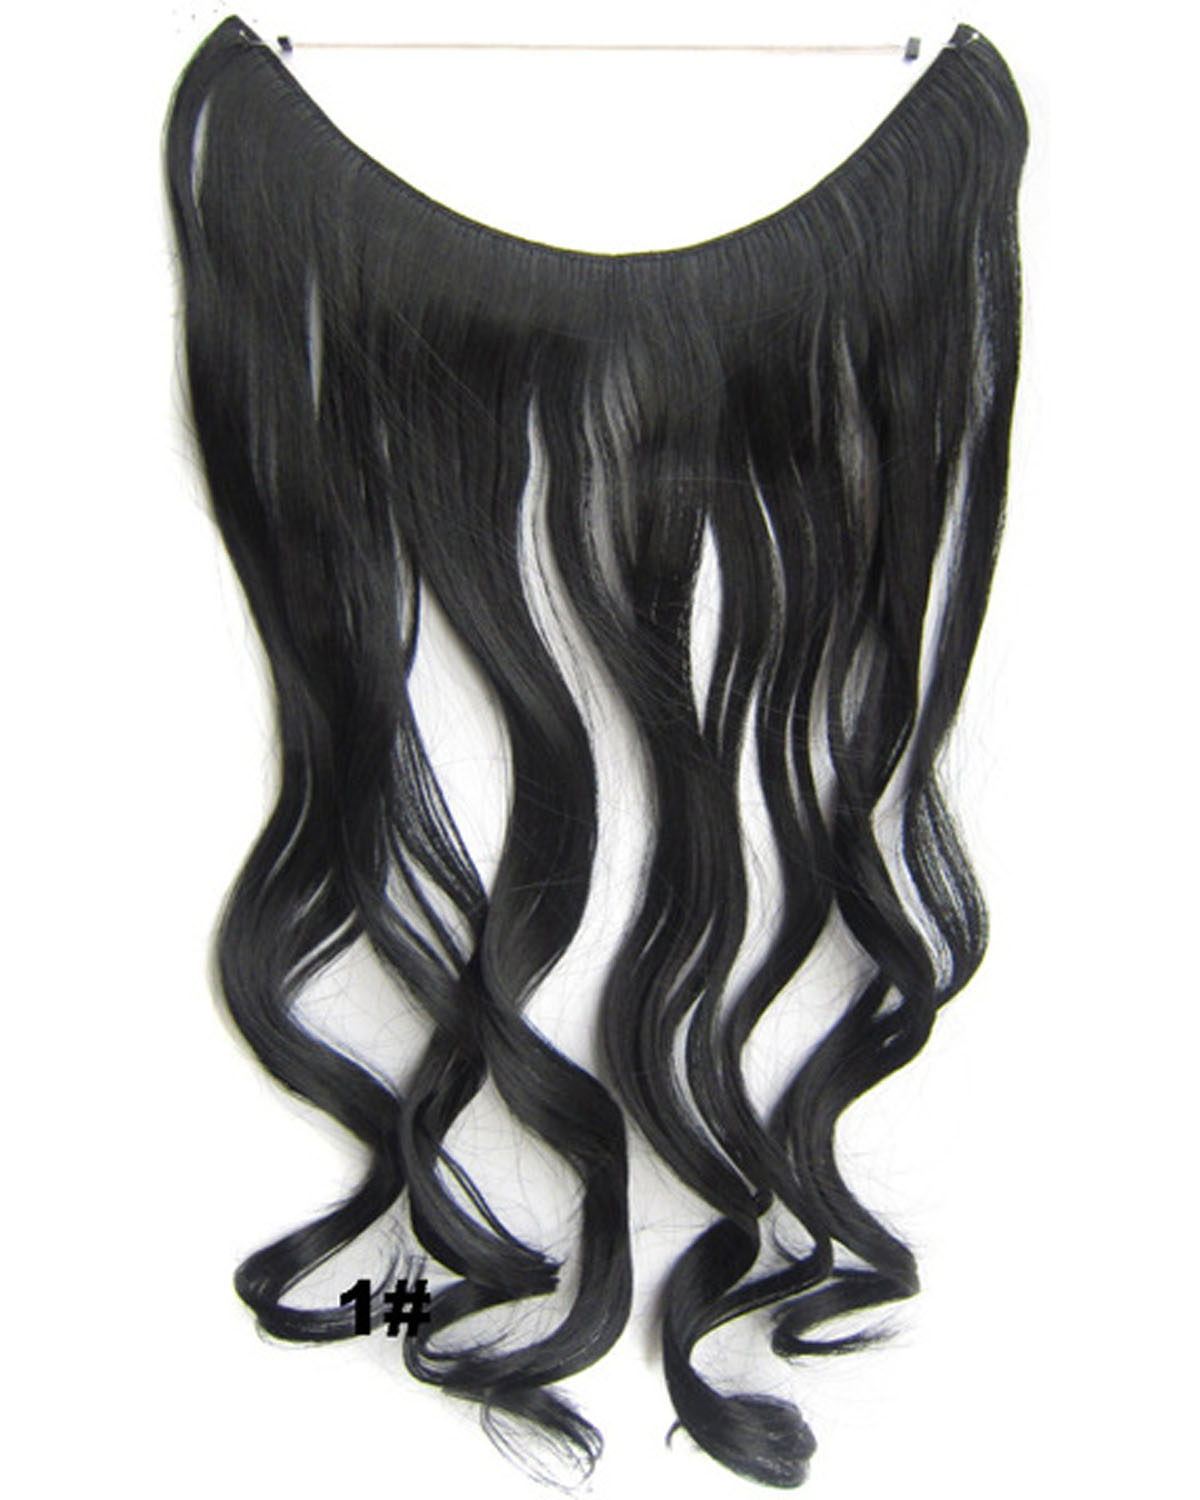 22 Inch Newly Curly and Long One Piece Miracle Wire Flip in Synthetic Hair Extension1#